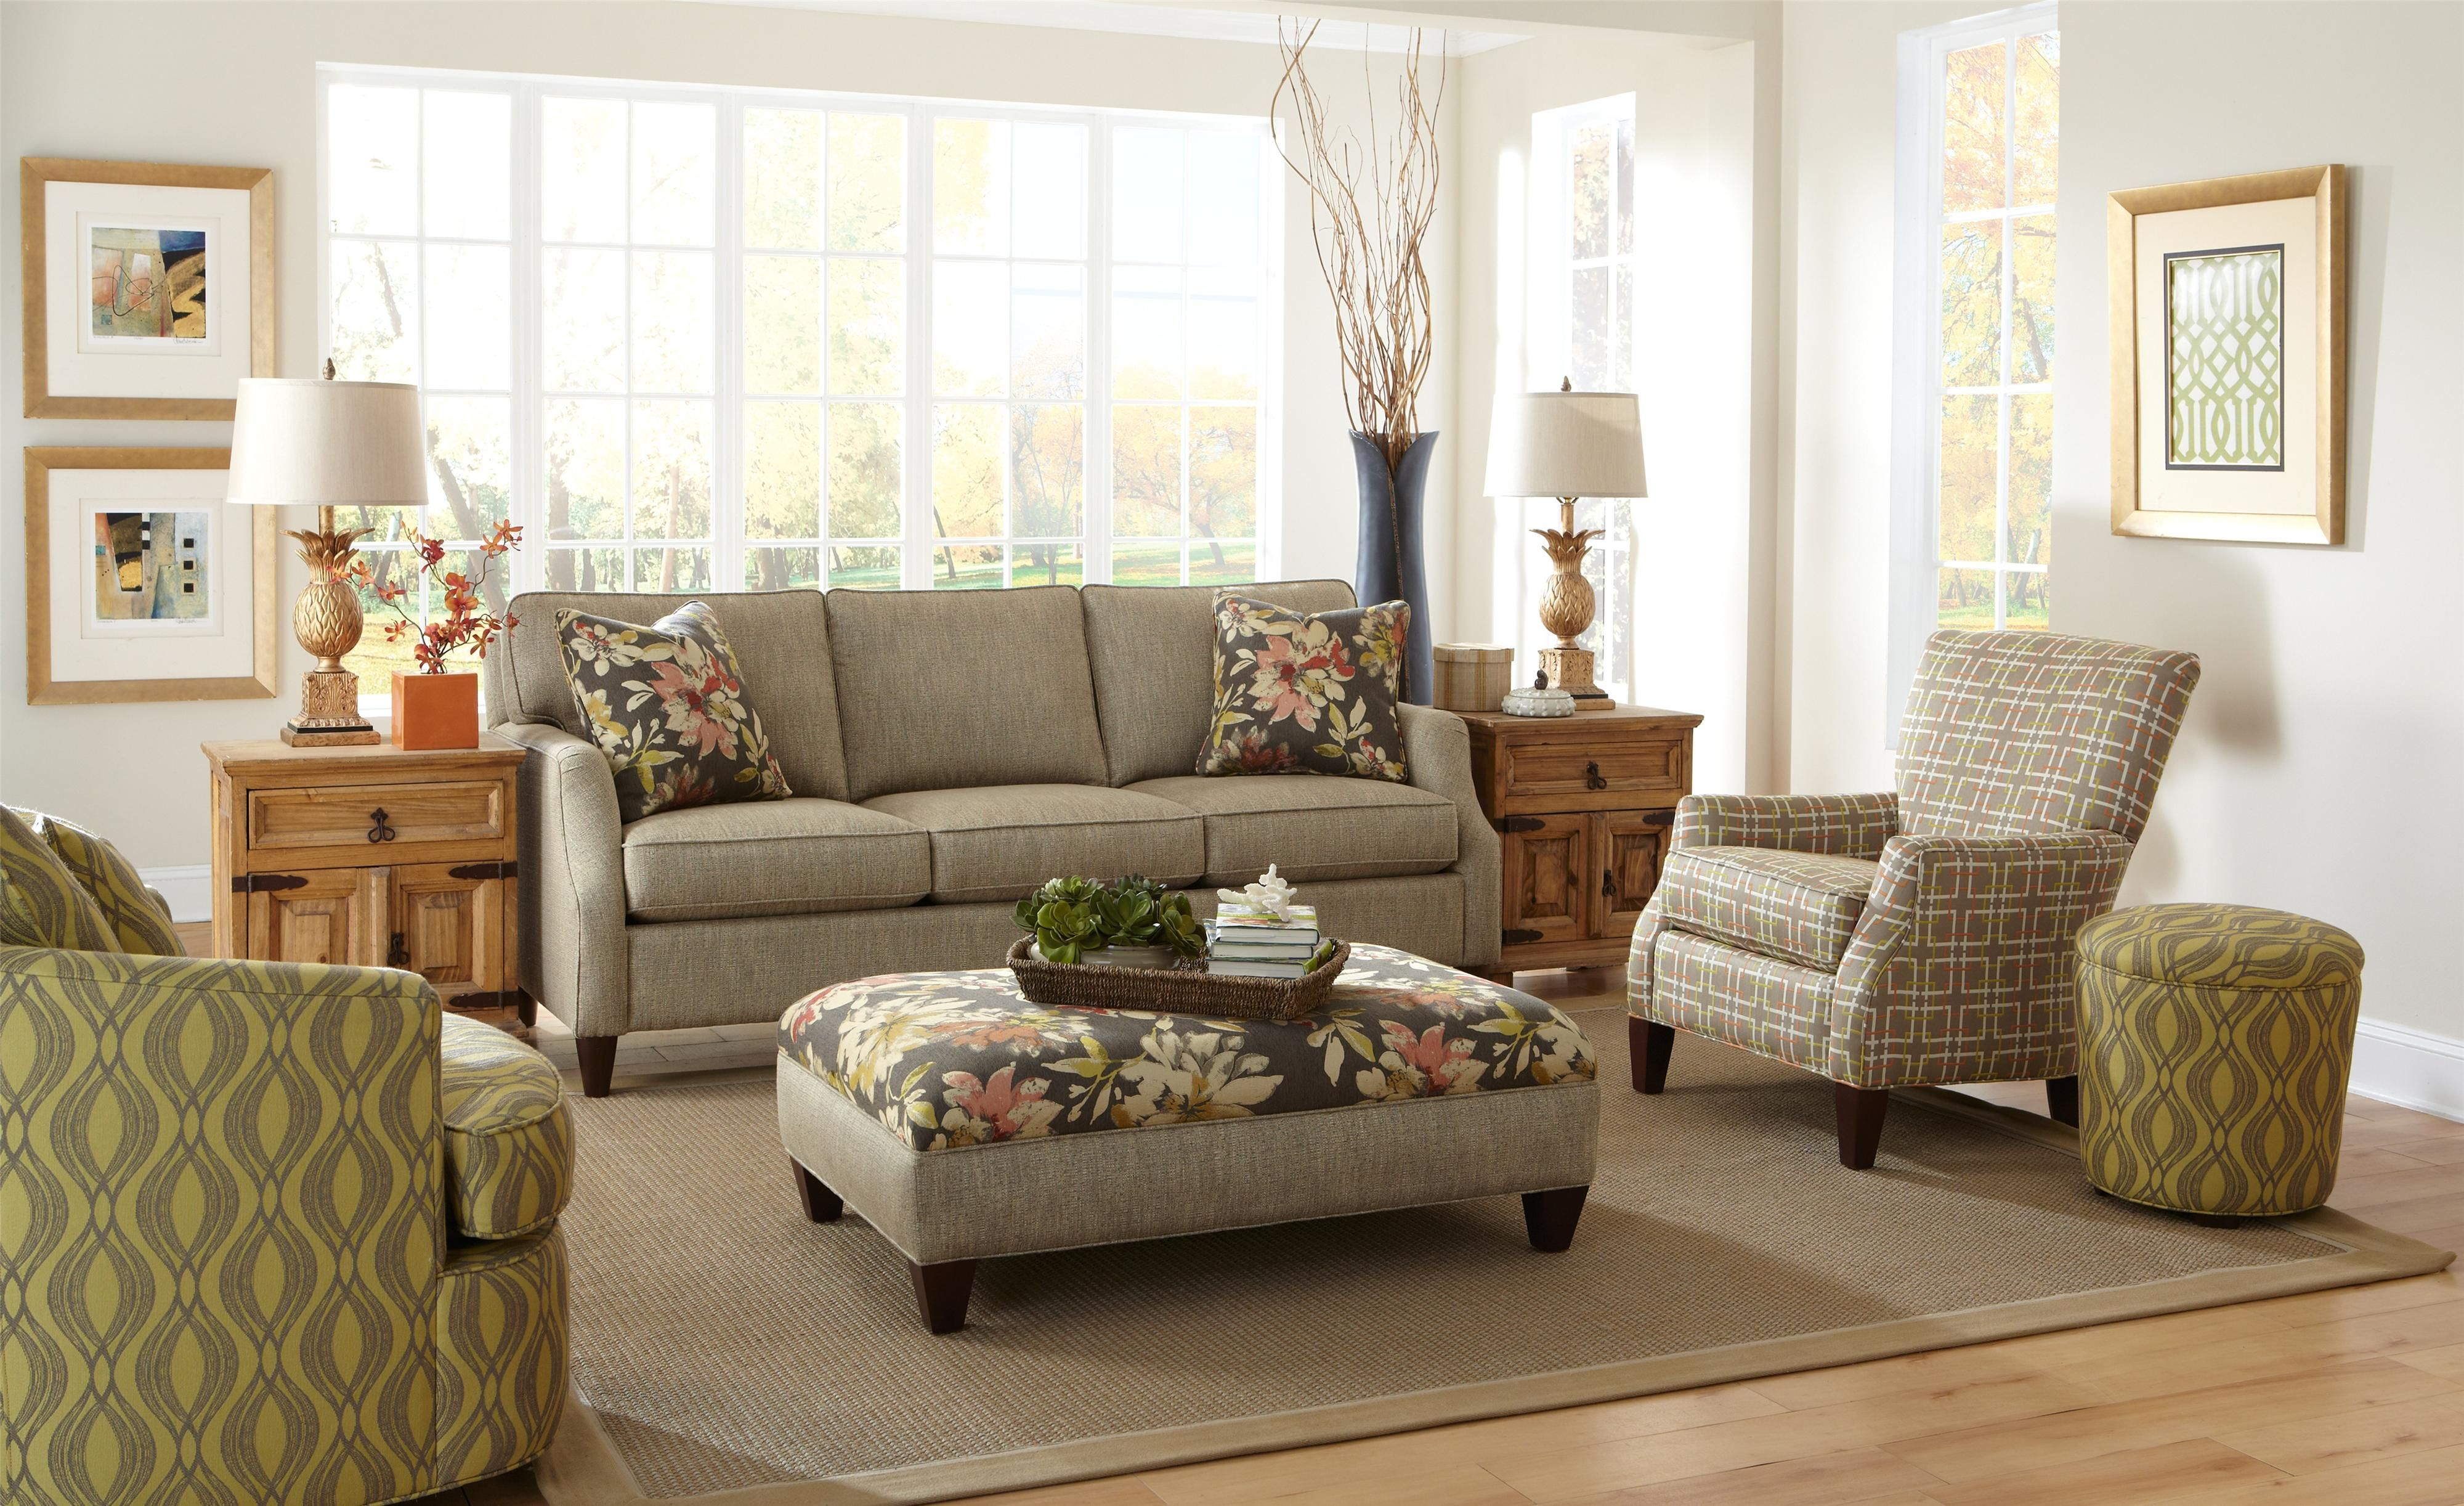 Grey Microfiber Couch Set, Accent Pillows | Josephine Sofa & Loveseat |  Livingroom | Pinterest | Couch Set, Mattress And Pillows